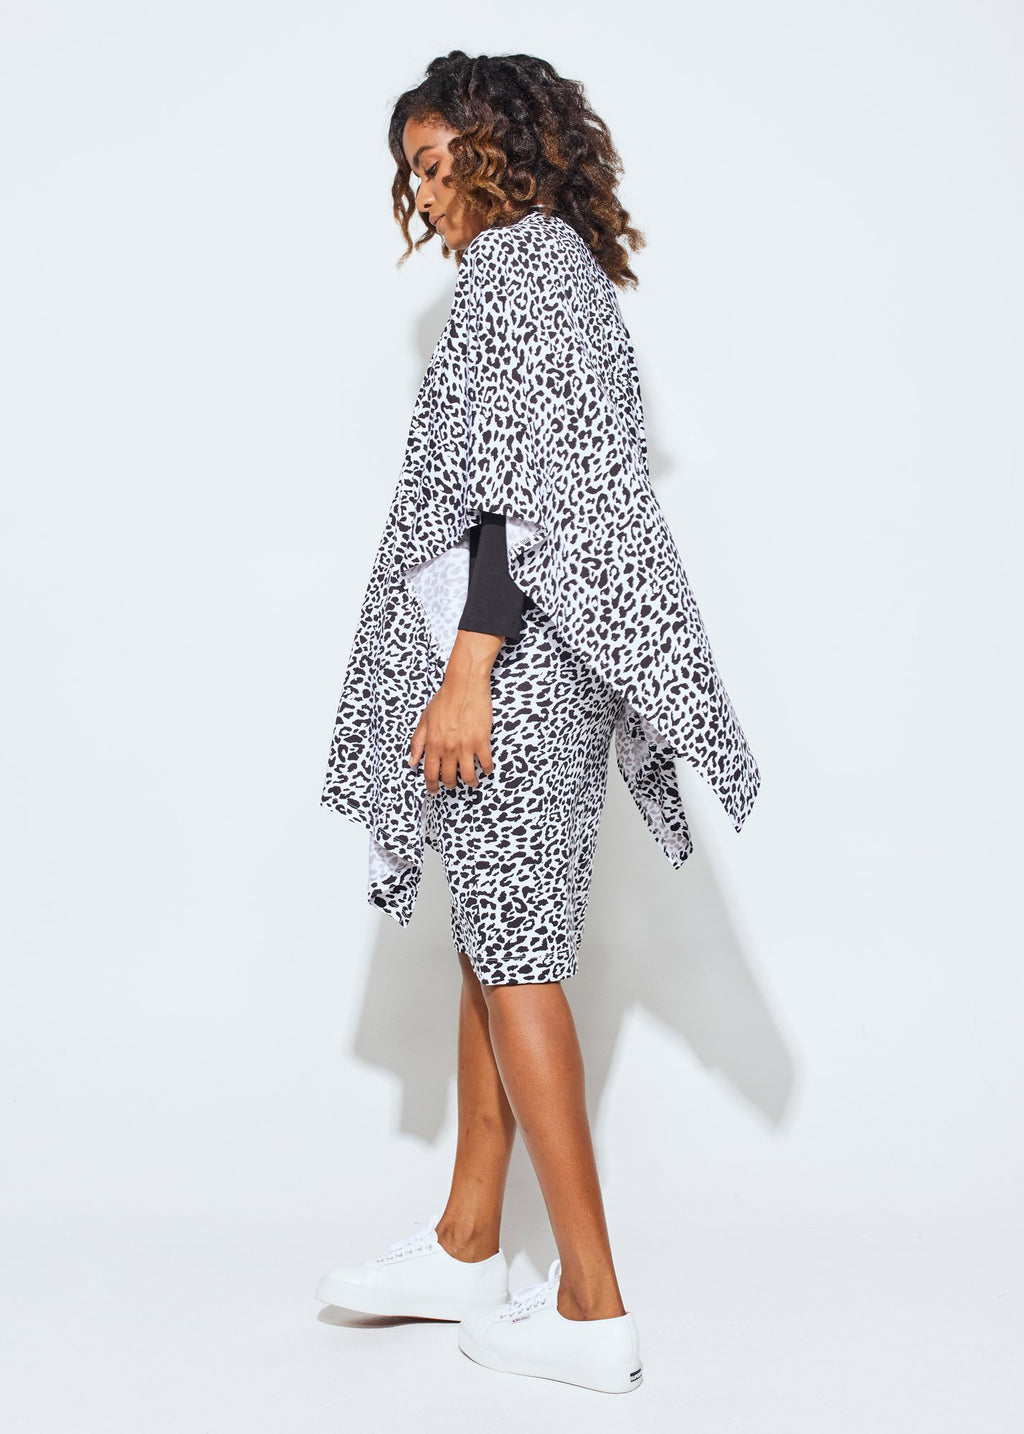 THE SUPREME BAMBOO WRAP, B/W LEOPARD